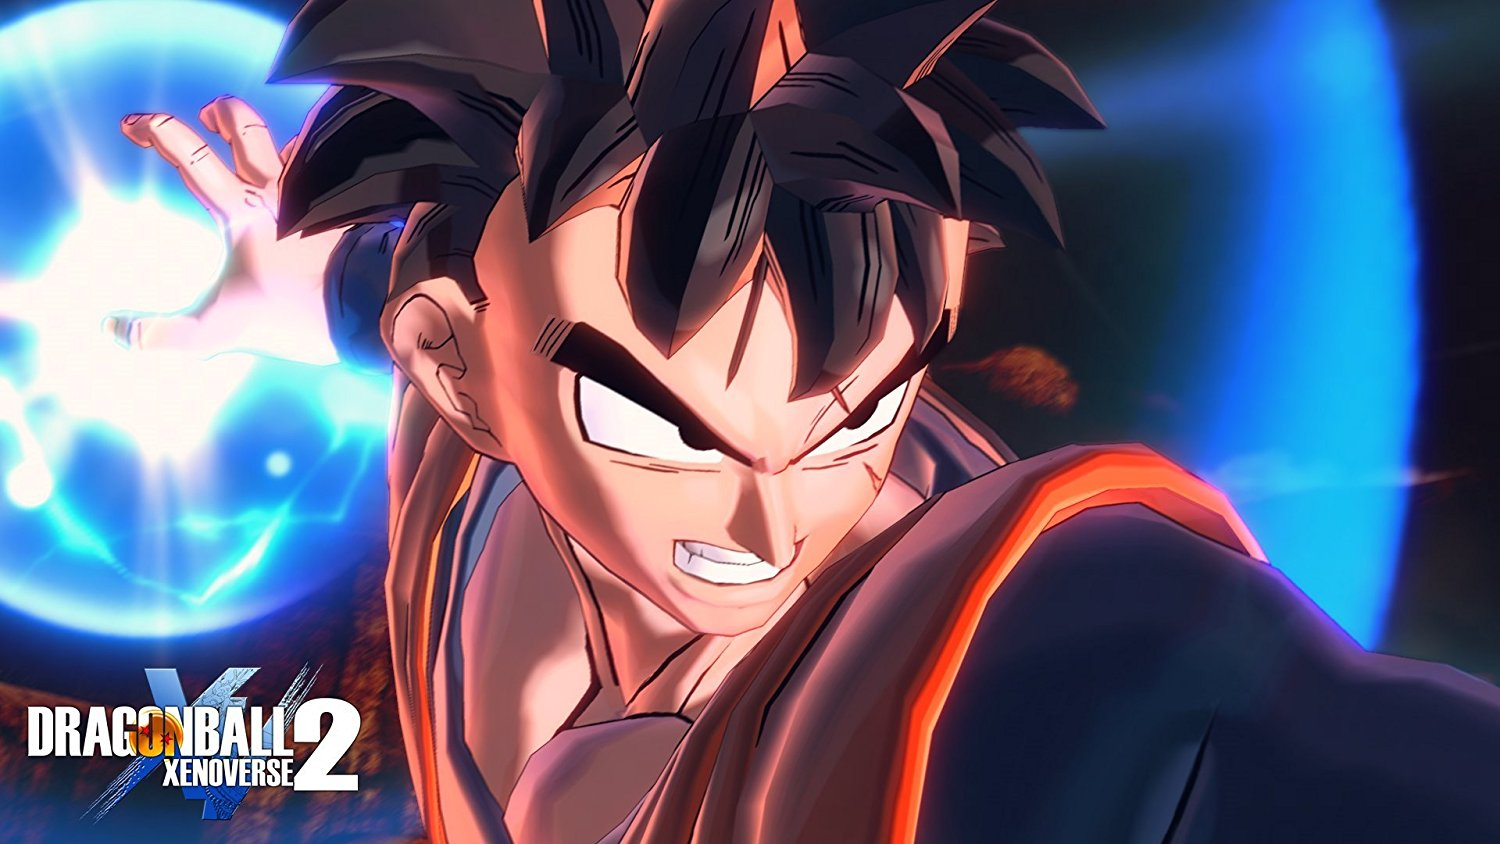 Dragonball Xenoverse 2 - PS4 - Video Games by Bandai Namco Entertainment The Chelsea Gamer